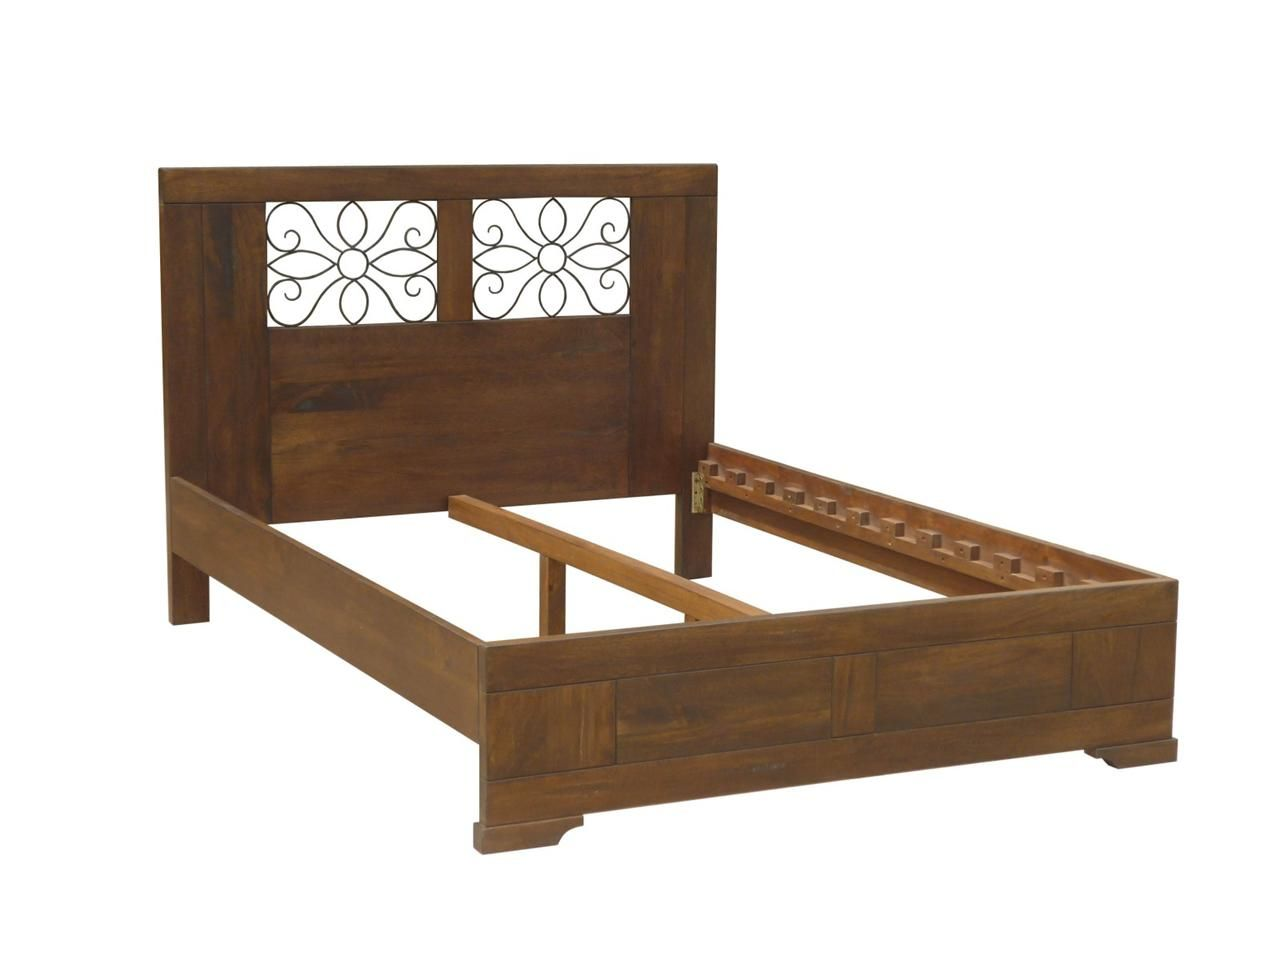 solid hardwood timber tuscany grande country european style double bed frame ebay - Country Bed Frames